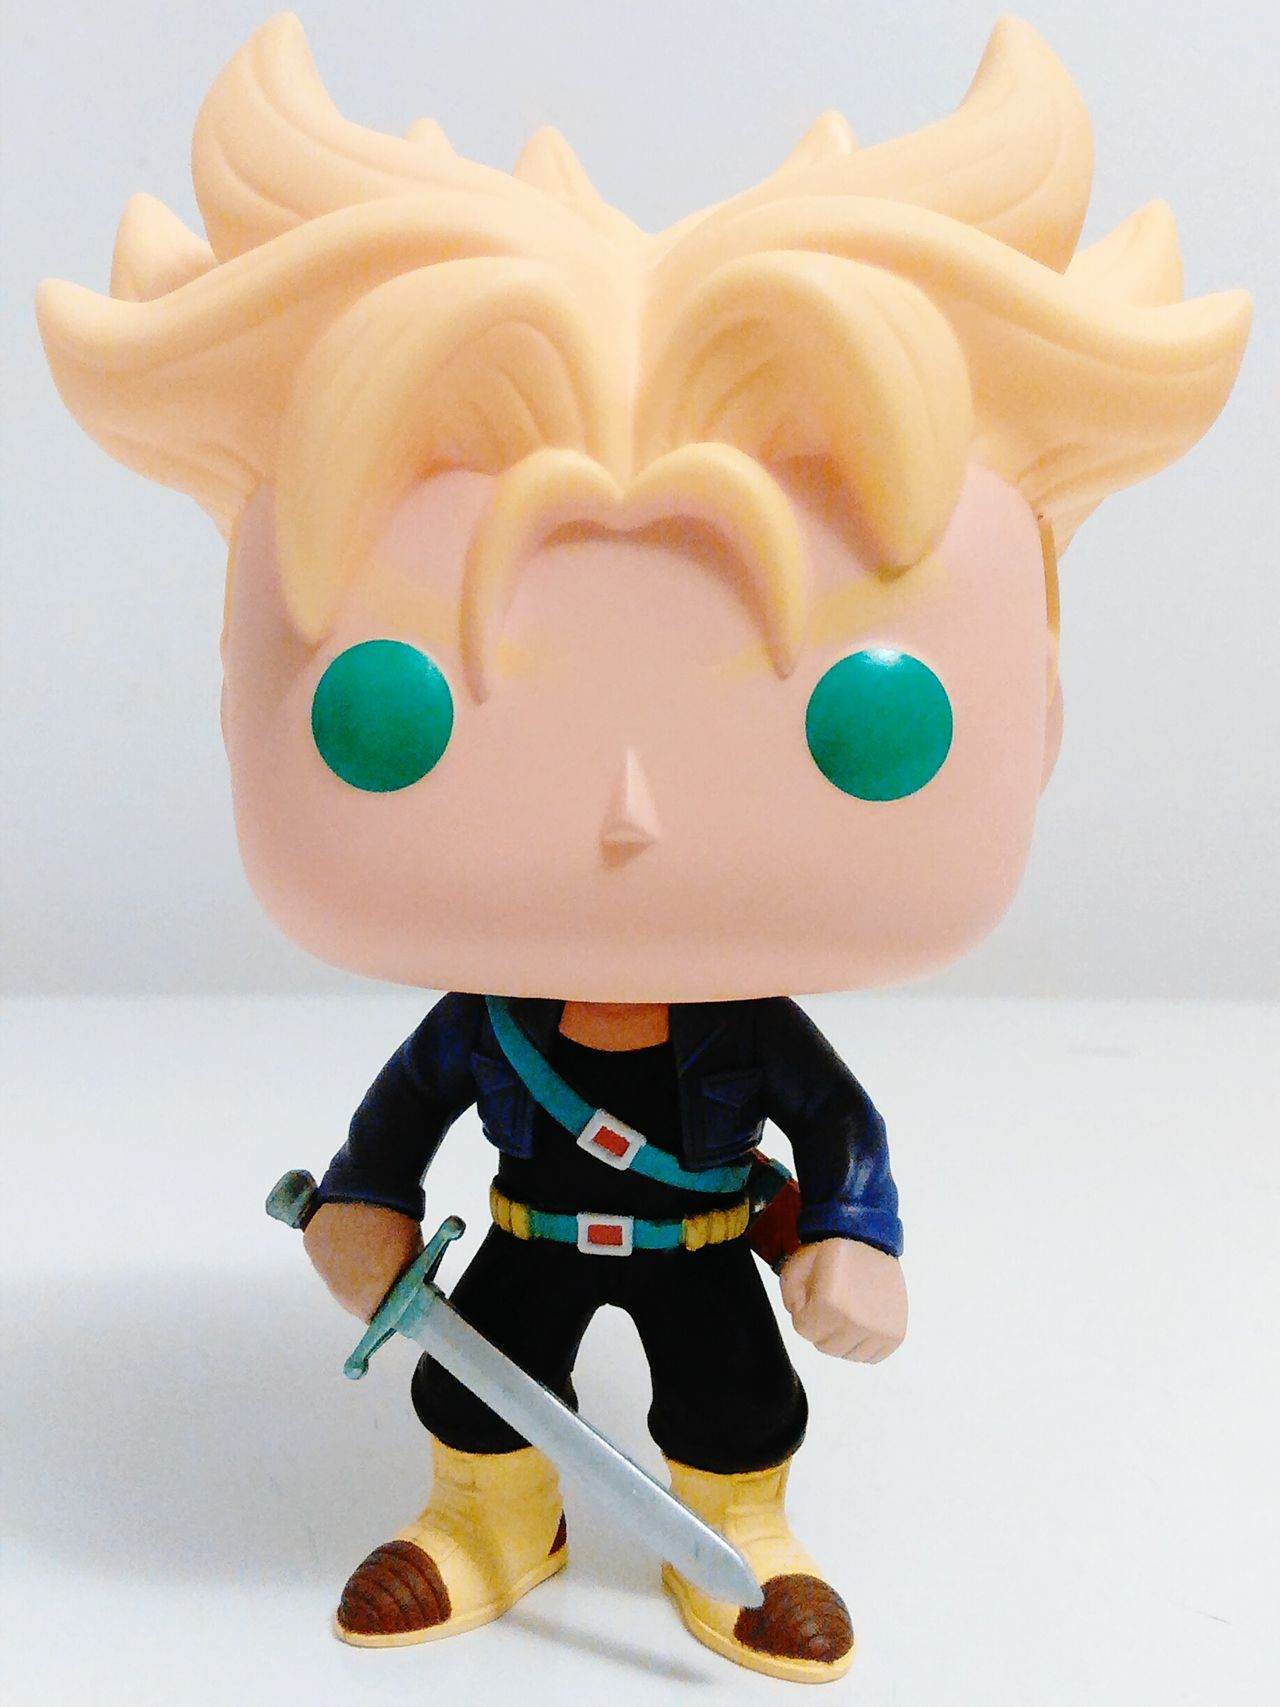 Studio Shot White Background Indoors  Close-up Trunks Dragonballz Supersaiyan Single Object Upclose  Exclusive  Newyorkcomiccon Colorful Funko Funkopopvinyl Still Life In Front Of Vibrant Color Whitebackground Popfunko Amazing Exclusive  Soexcited Brandnew Exclusive  Extreme Close-up